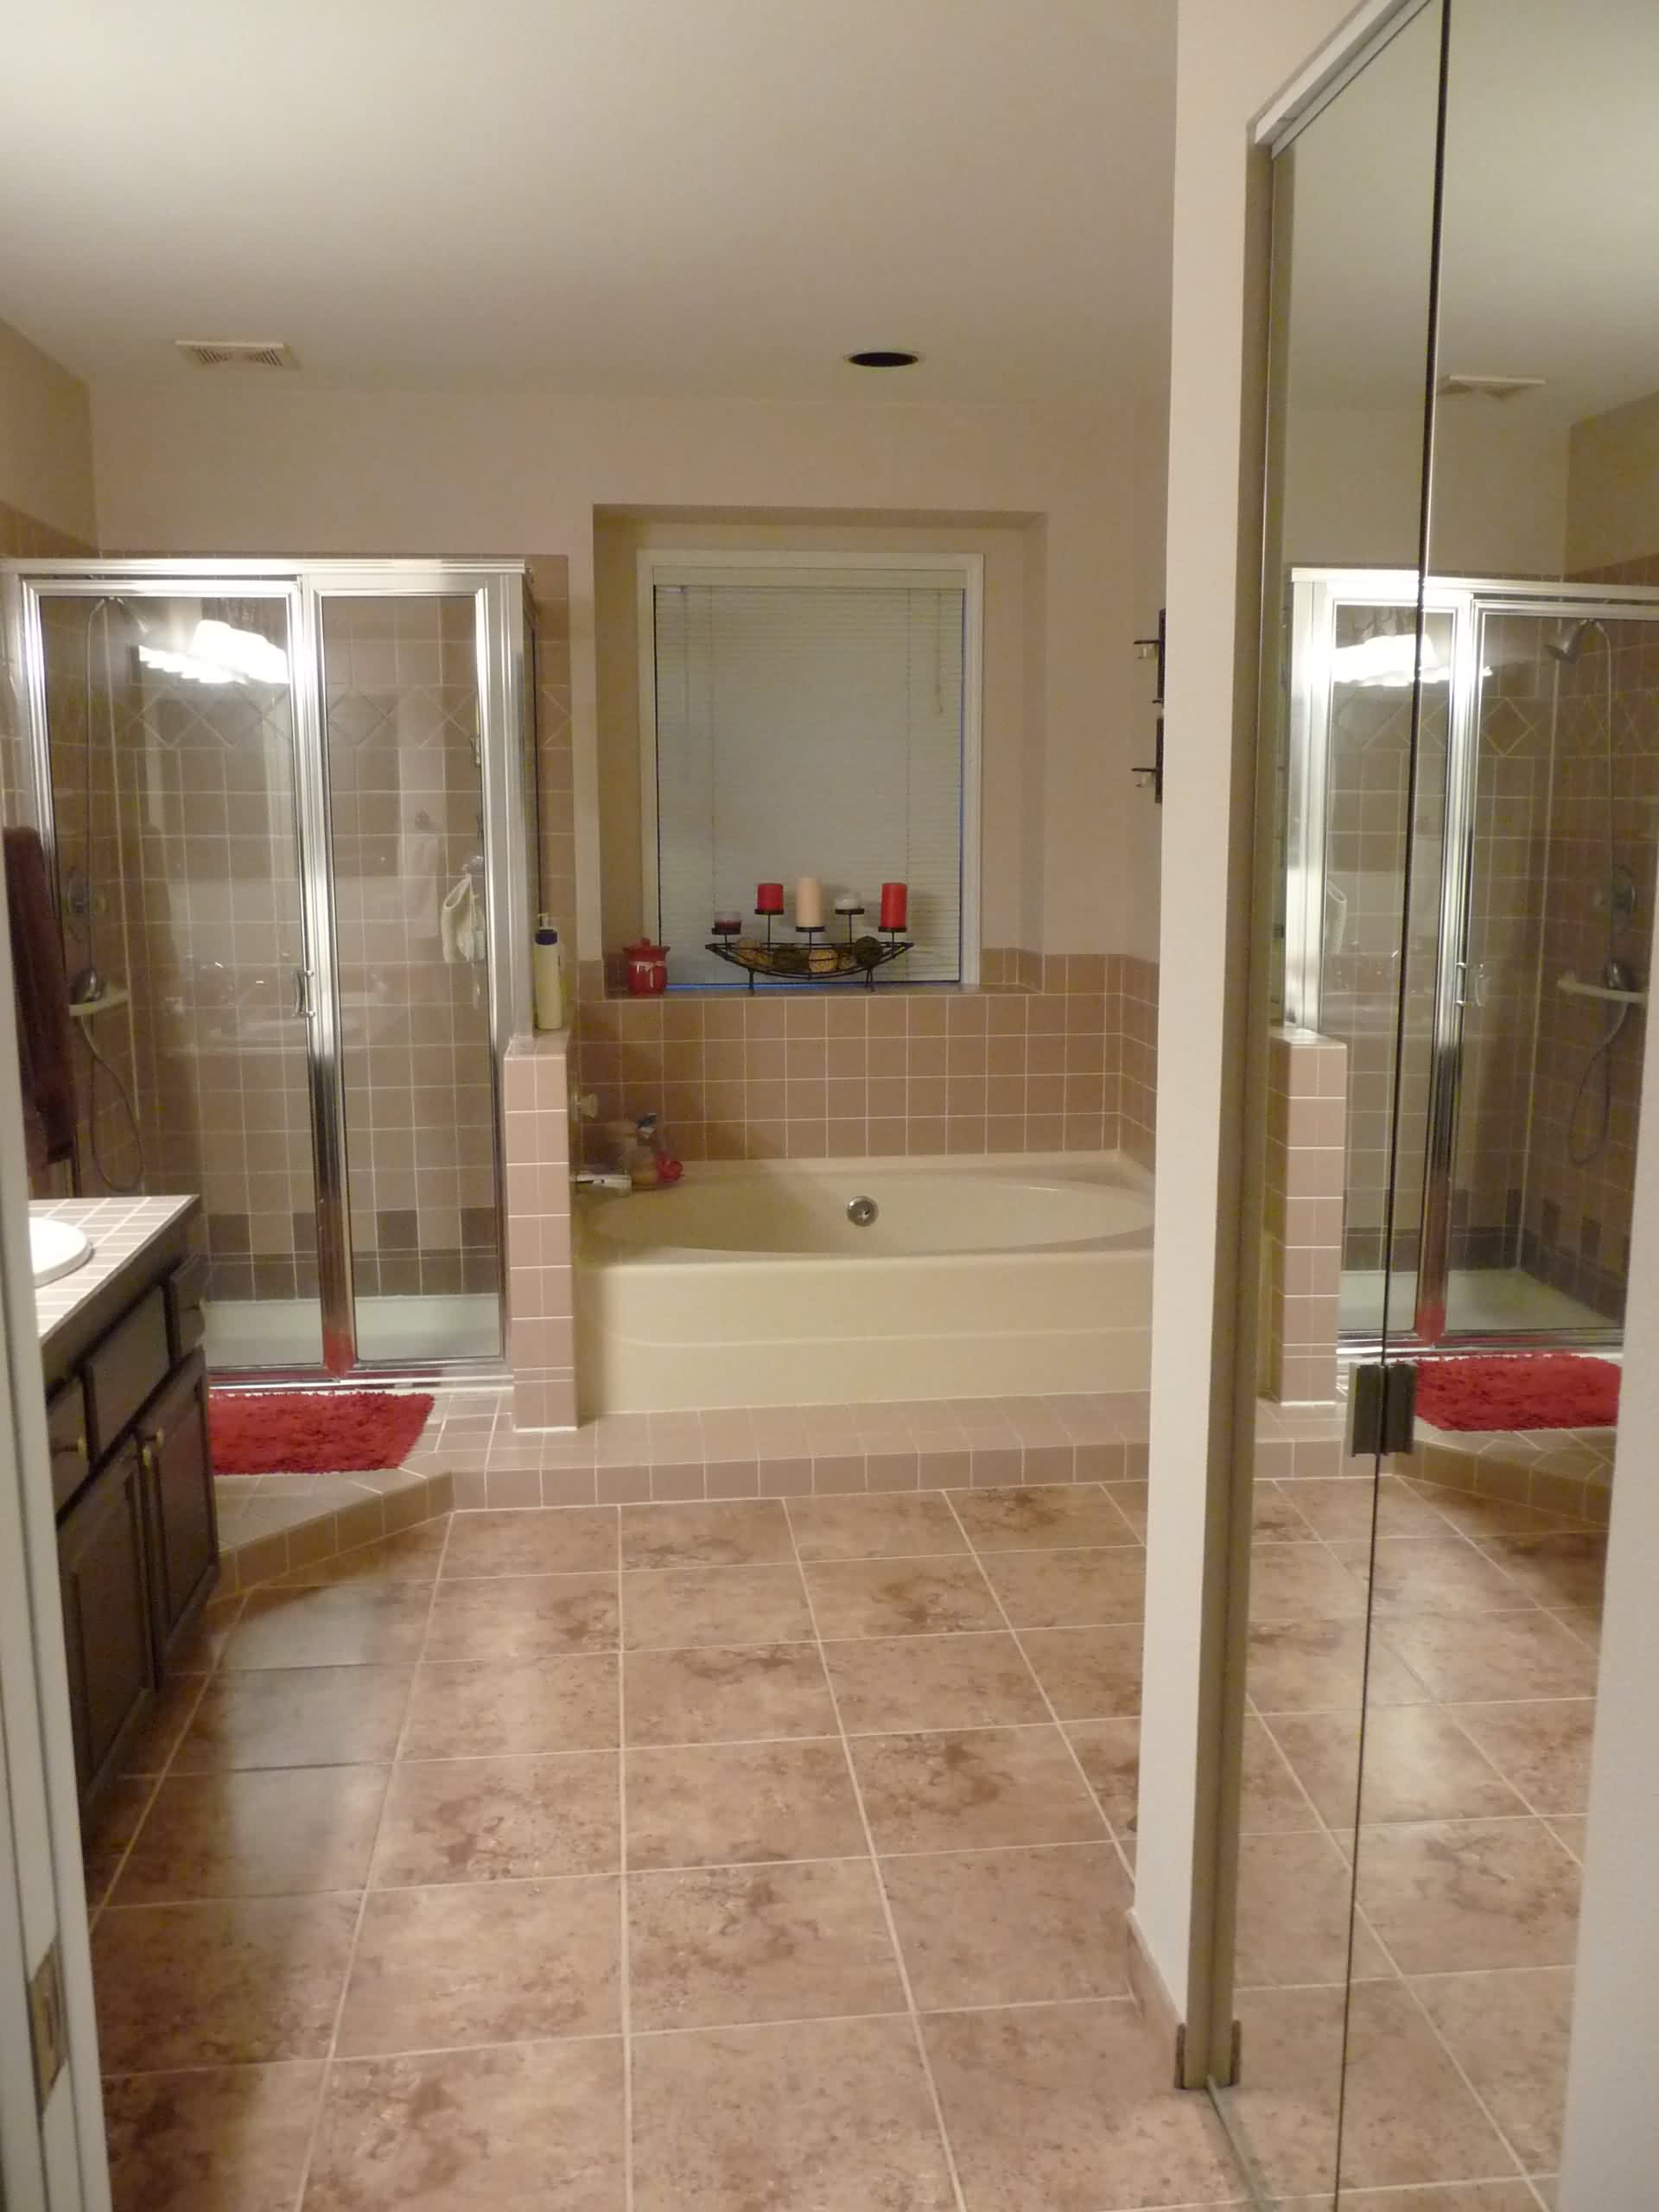 interior-soft-brown-bathroom-tile-floor-connected-by-cream-bathtub-next-to-glass-shower-stalls-elegant-brown-bathroom-tiles-offers-pleasing-nuance-for-your-bathroom